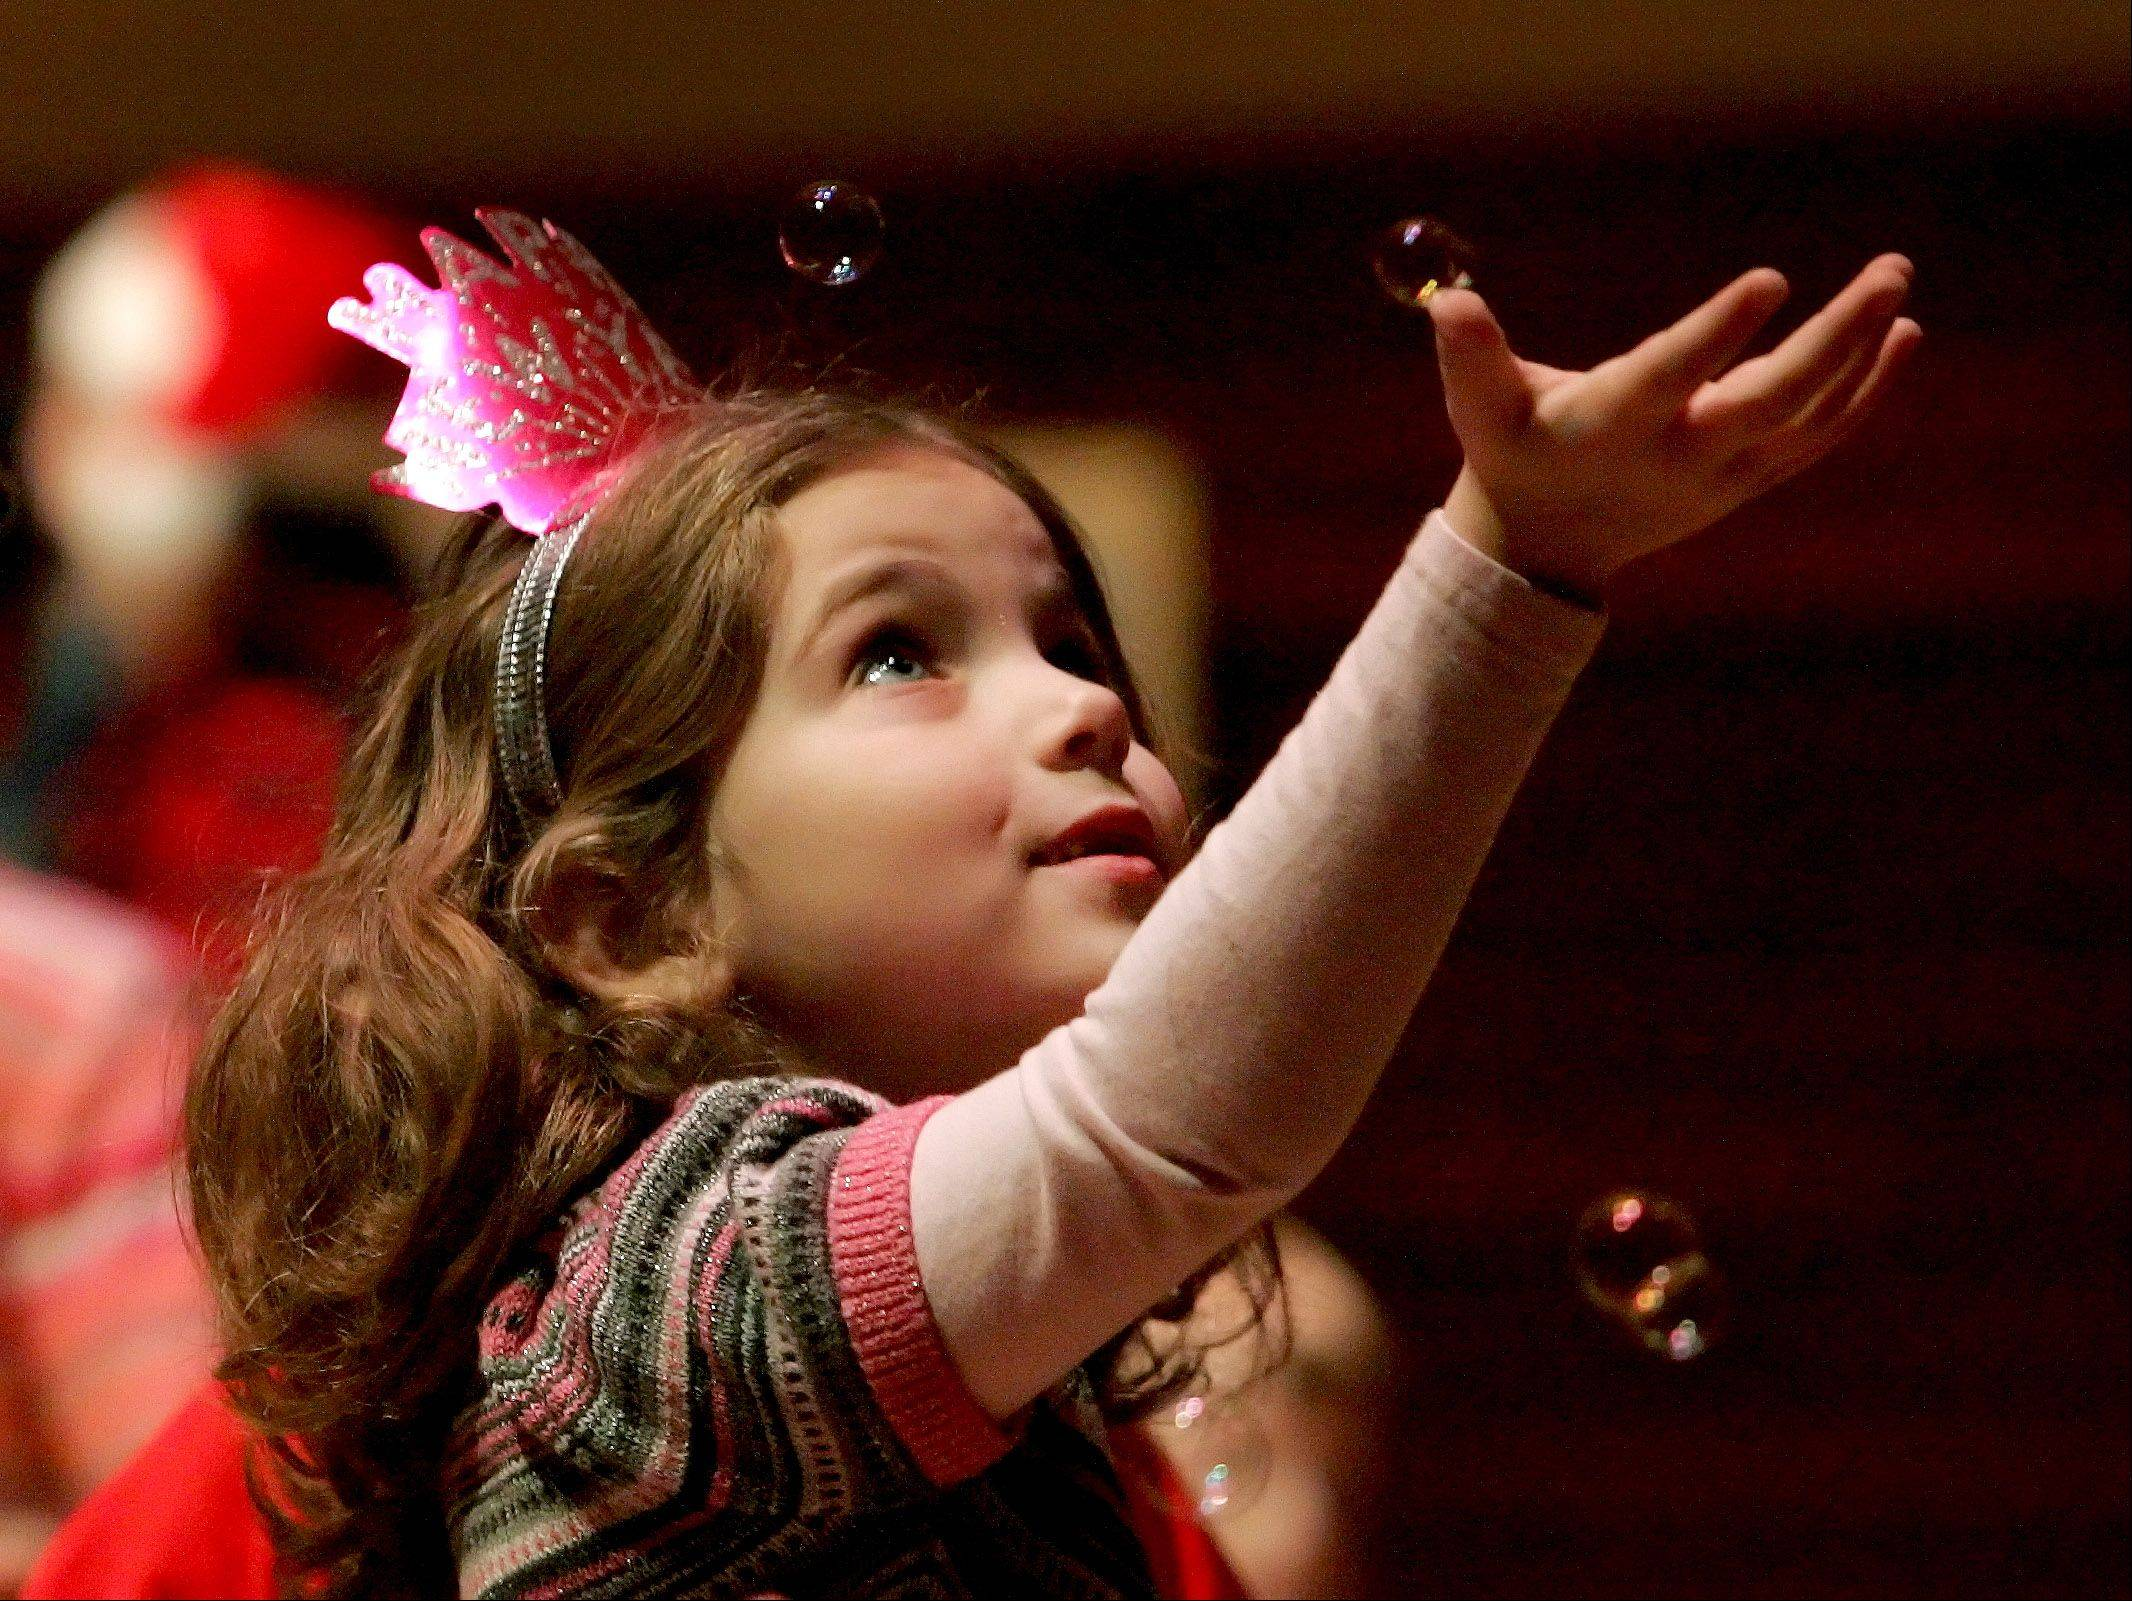 Katie Harley, 5, of Naperville, tries to catch a couple bubbles as she celebrates at the DuPage Children's Museum Bubble Bash at Wentz Concert Hall in Naperville.